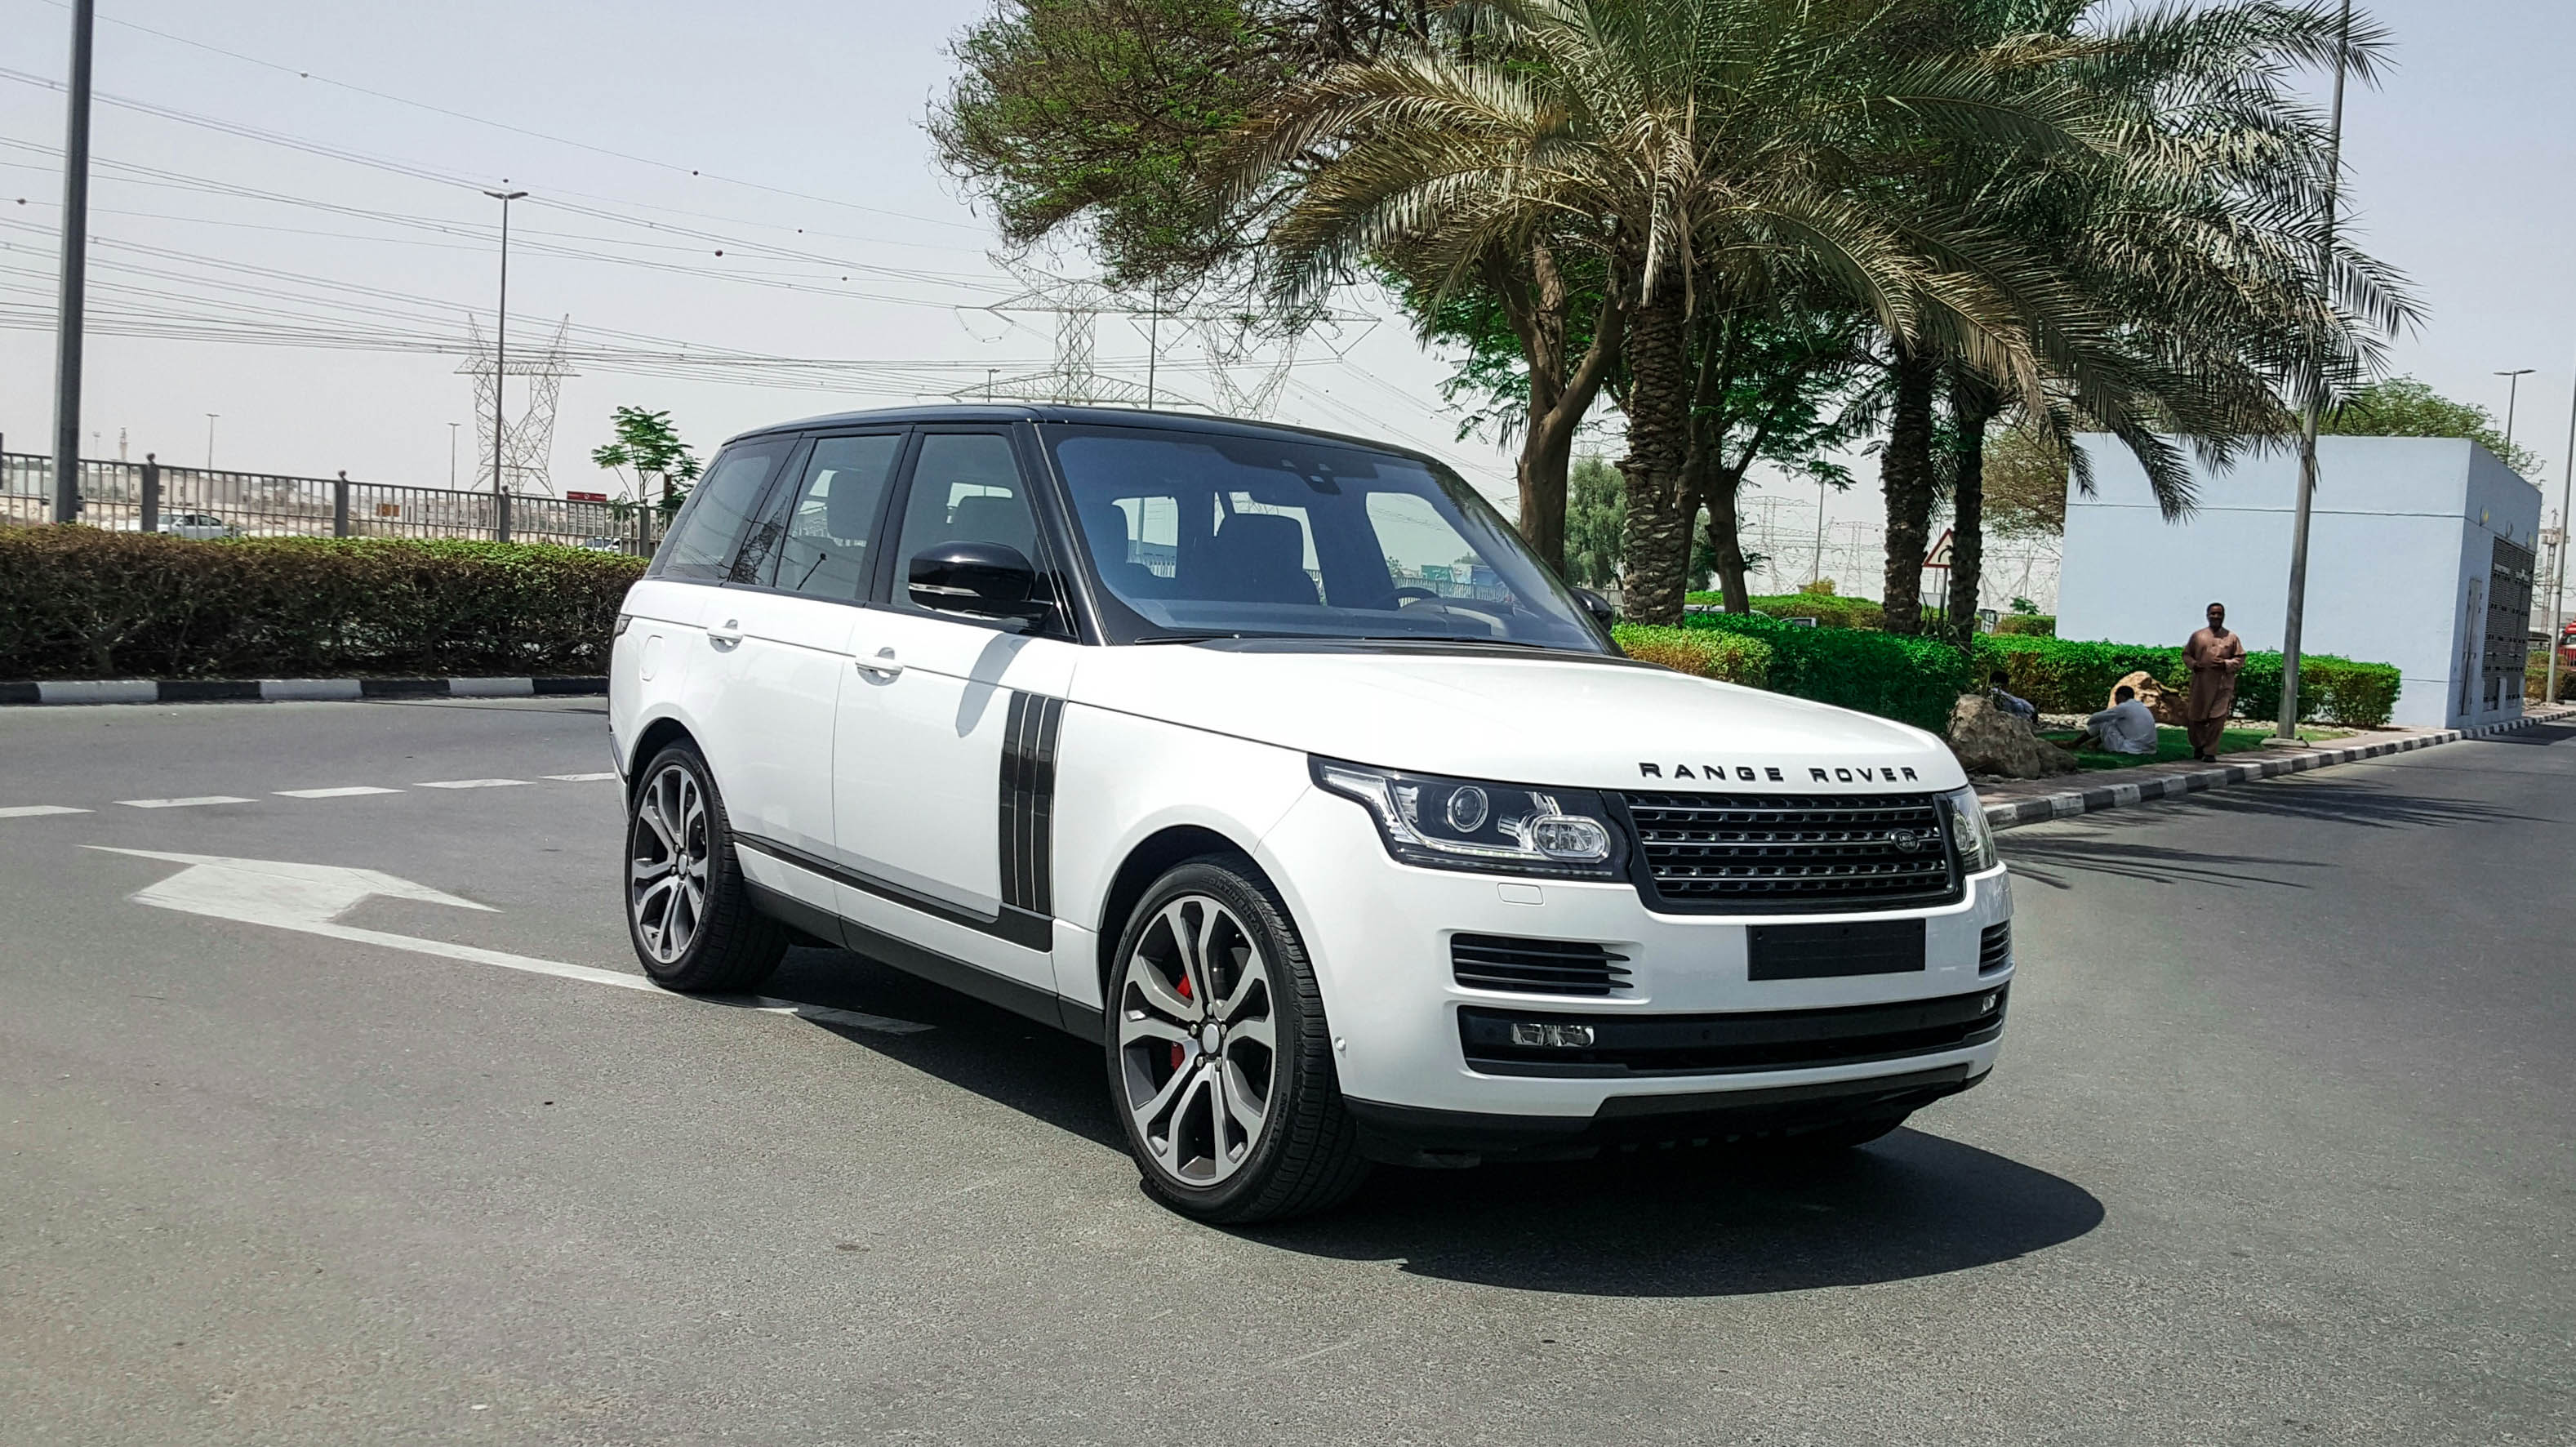 range rover autobiography sv formula motors llc dubai. Black Bedroom Furniture Sets. Home Design Ideas